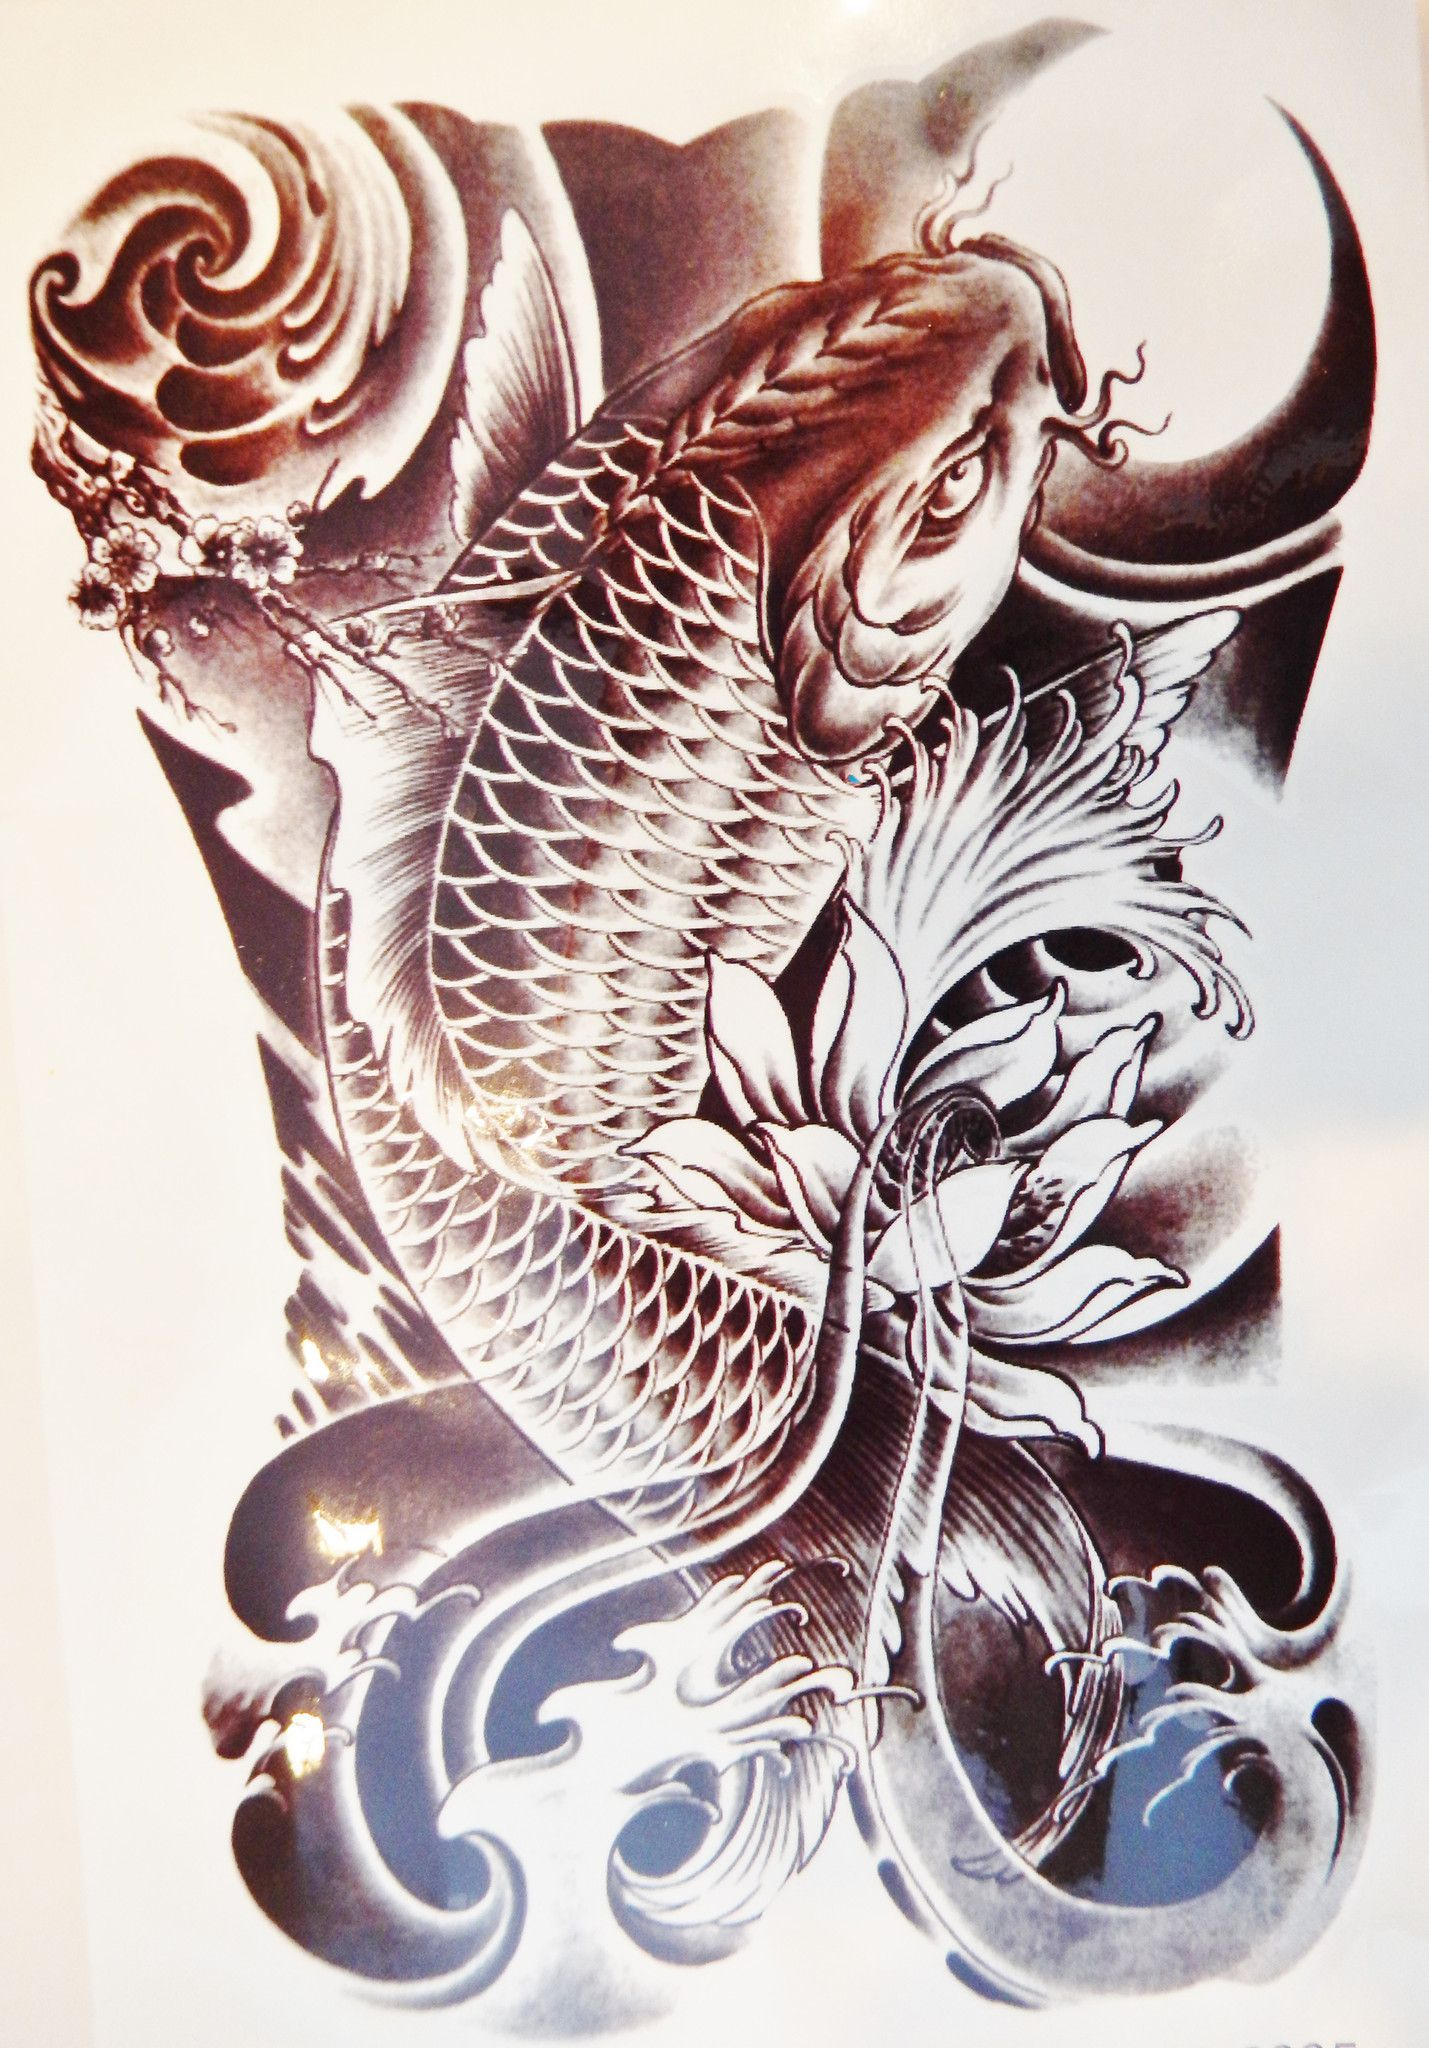 65 Japanese Koi Fish Tattoo Designs Meanings: The 25+ Best Japanese Koi Fish Tattoo Ideas On Pinterest